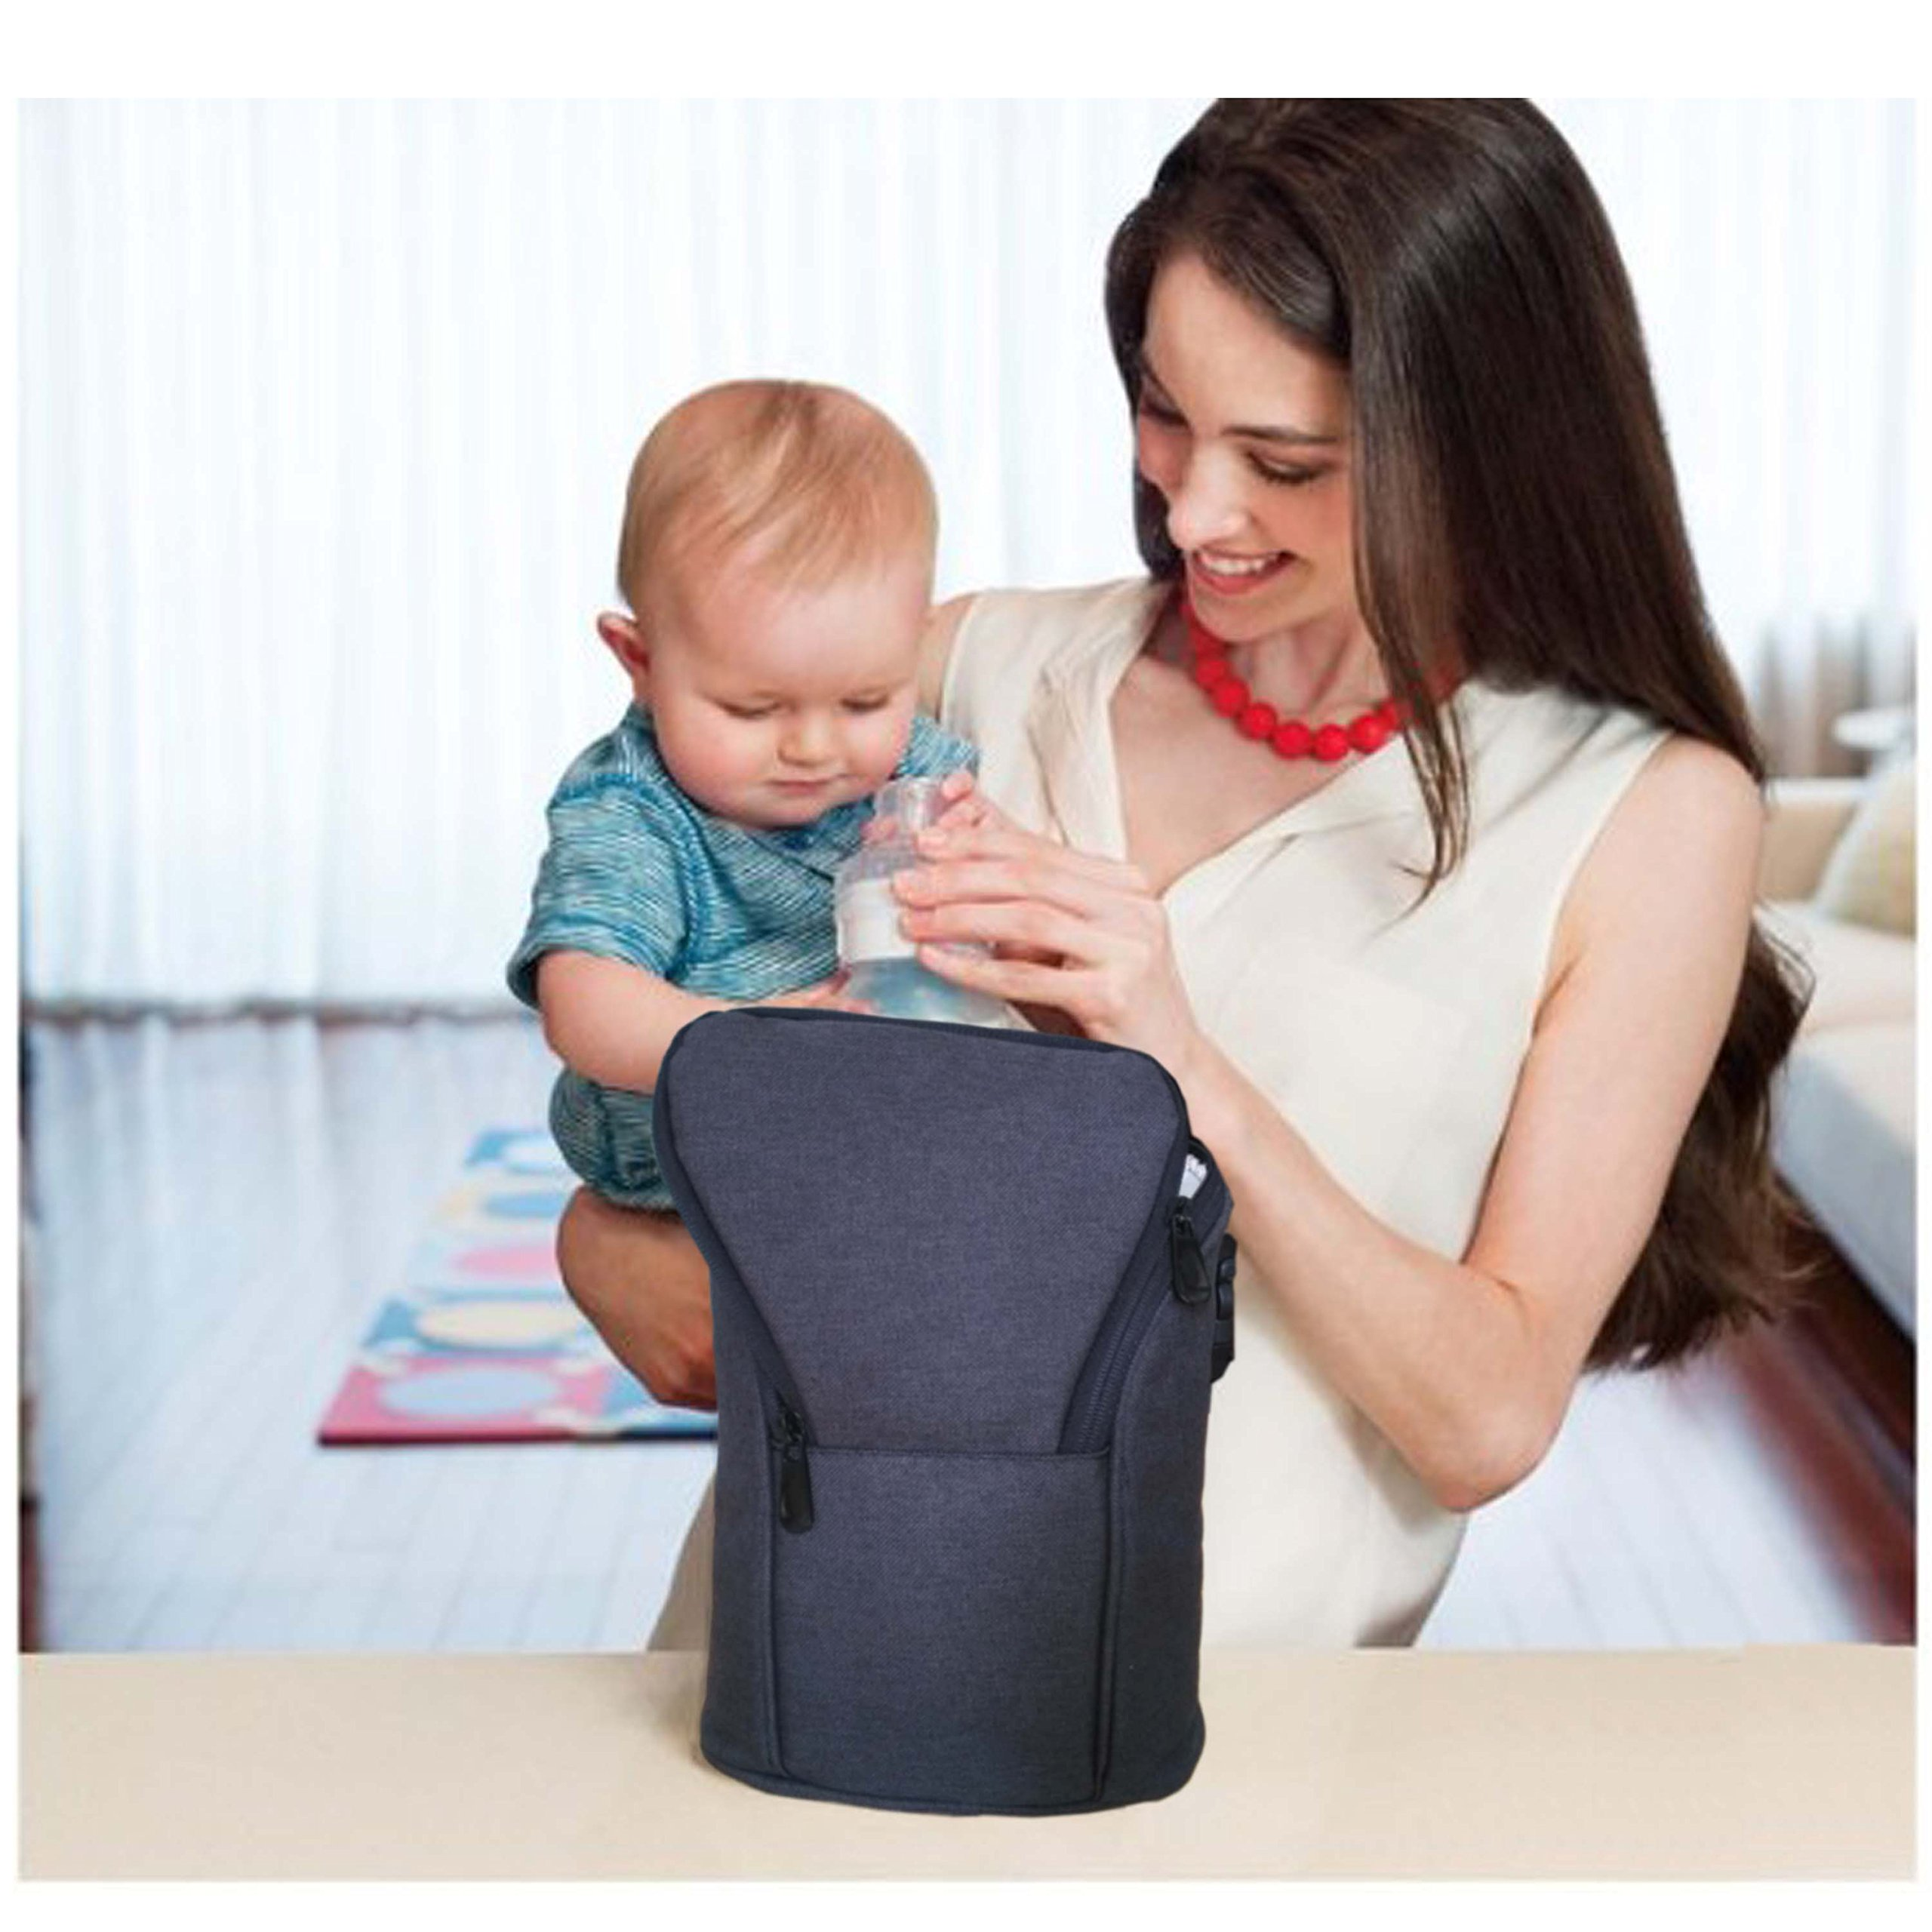 Breast Milk Baby Double Bottle Bag, Insulated Cooler Tote Keep Breast Milk Cold or Warm for Women,Men, and Kids (black) by Sanne (Image #4)